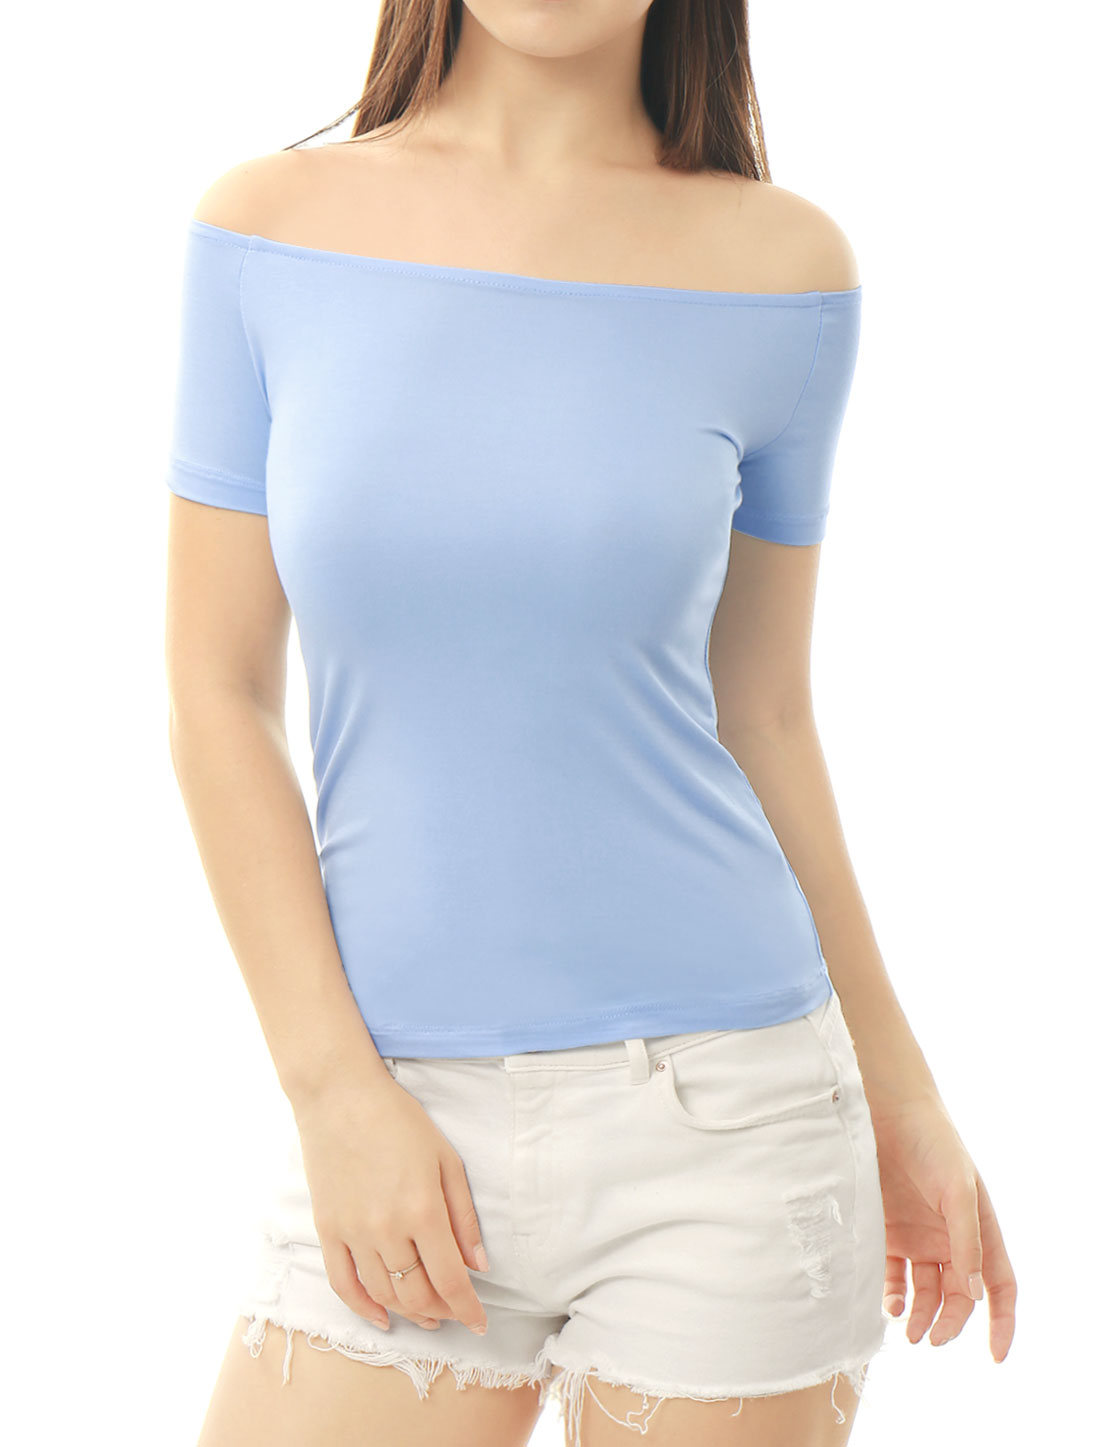 Women Short Sleeves Slim Fit Off the Shoulder Top Light Blue XL